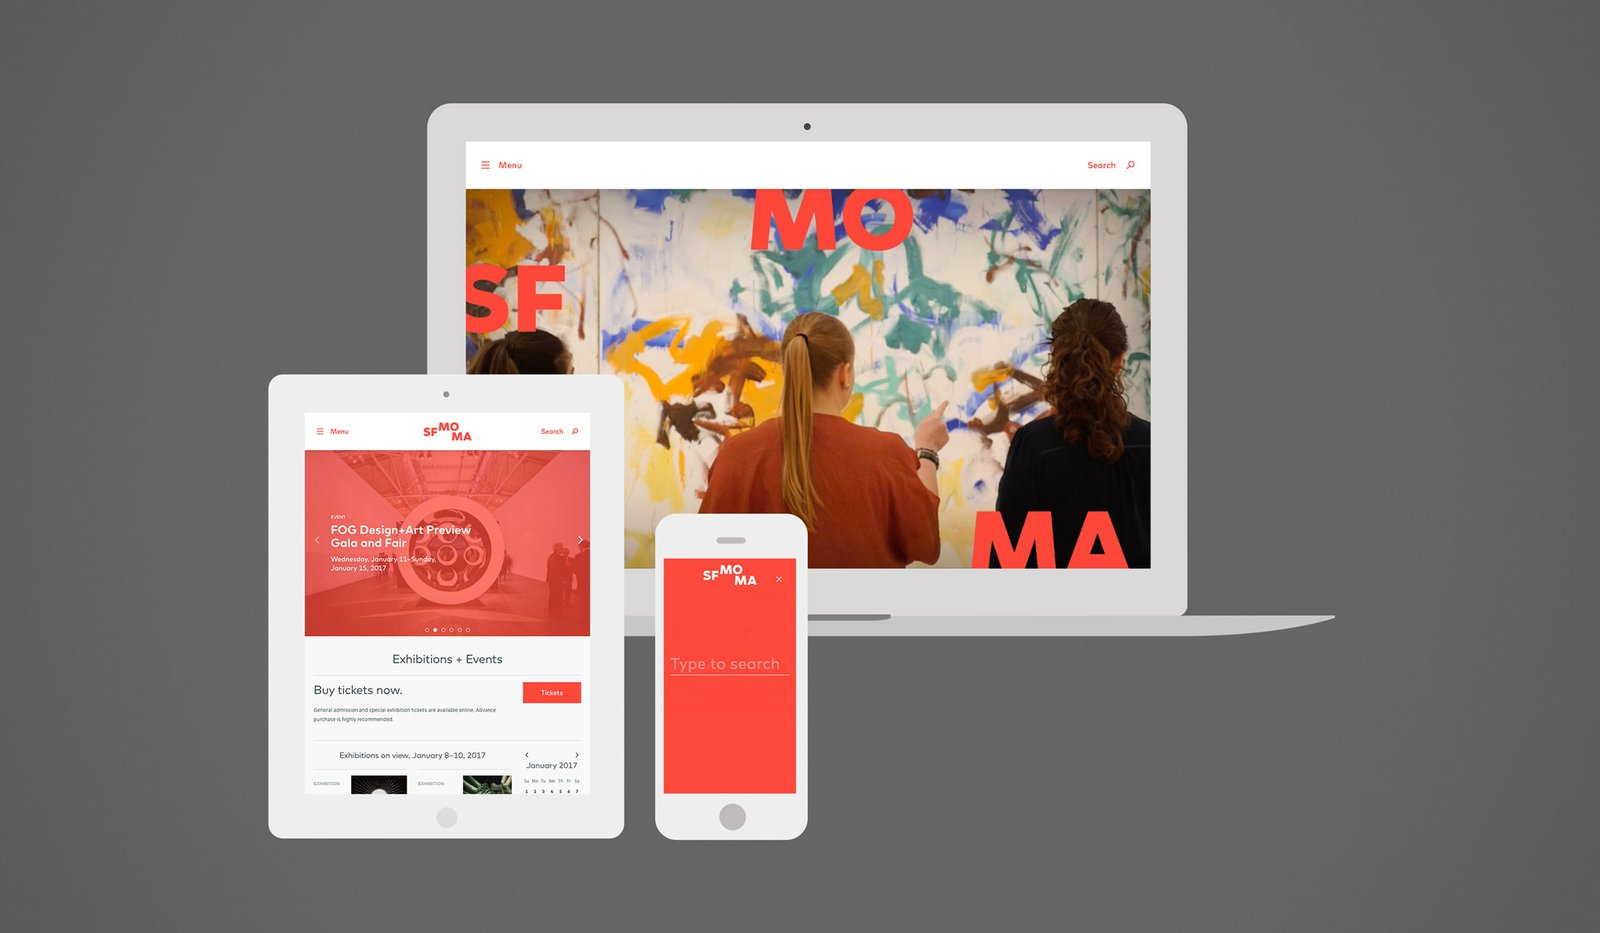 Screenshots of the SFMOMA website inside various device mockups